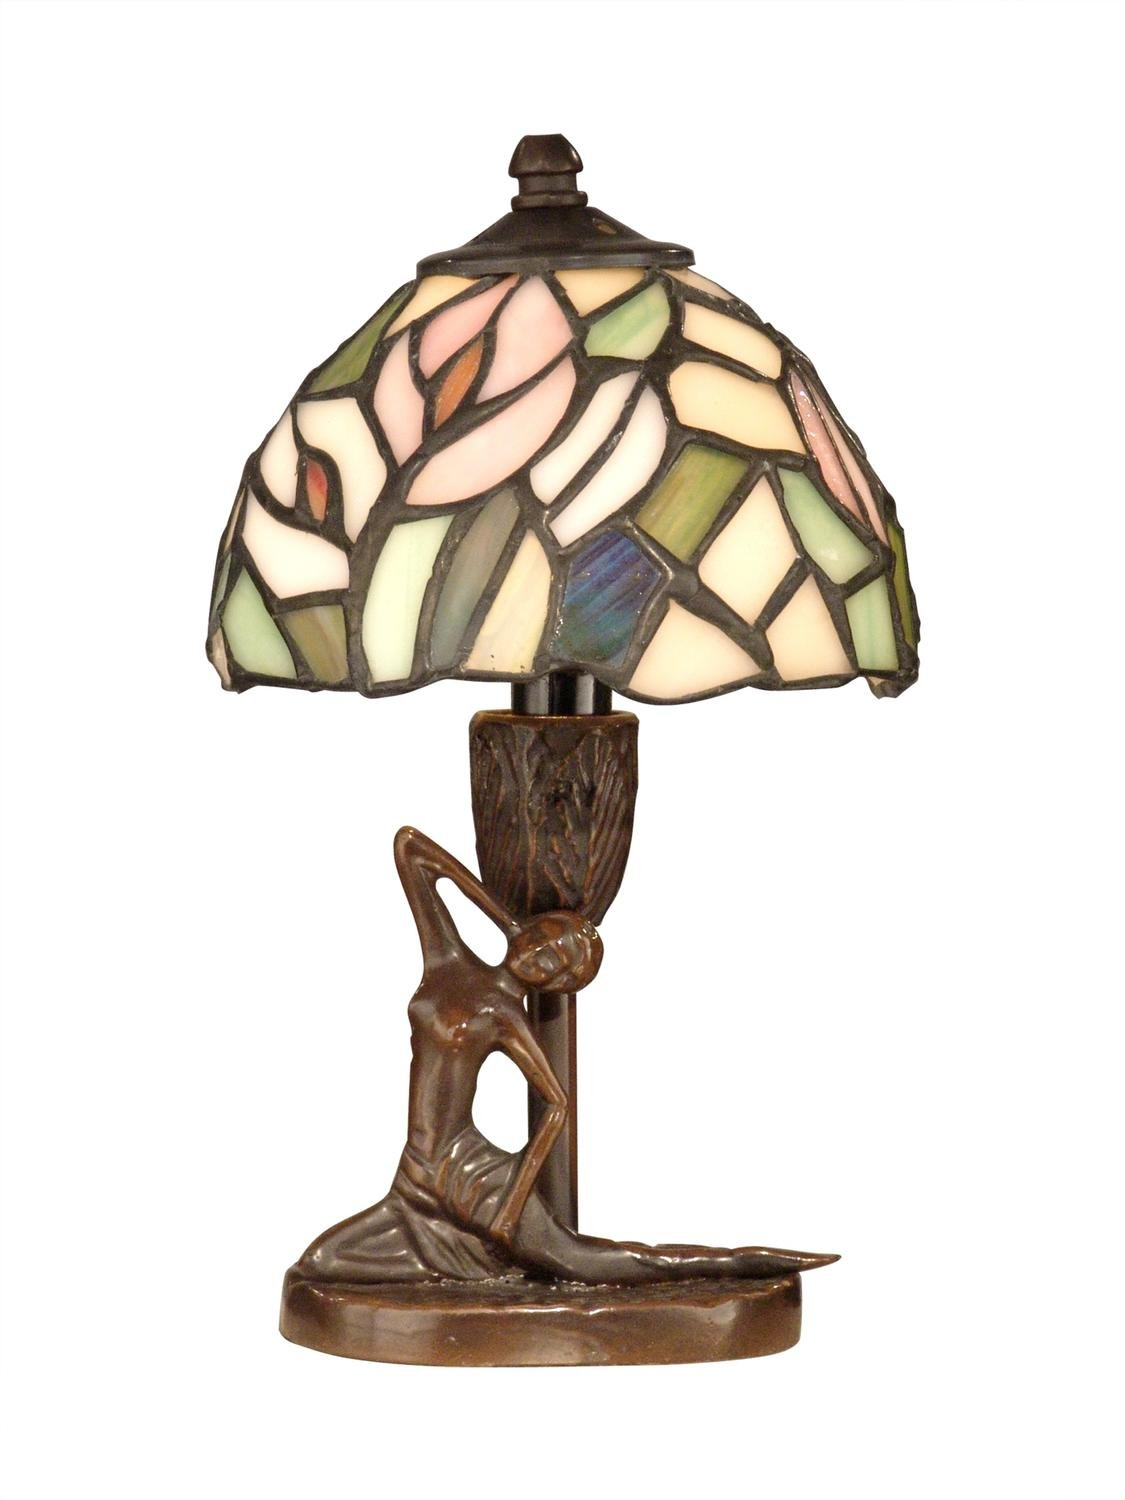 Diva At Home 9.5'' Antique Bronze Lady Hand Crafted Glass Tiffany-Style Accent Lamp